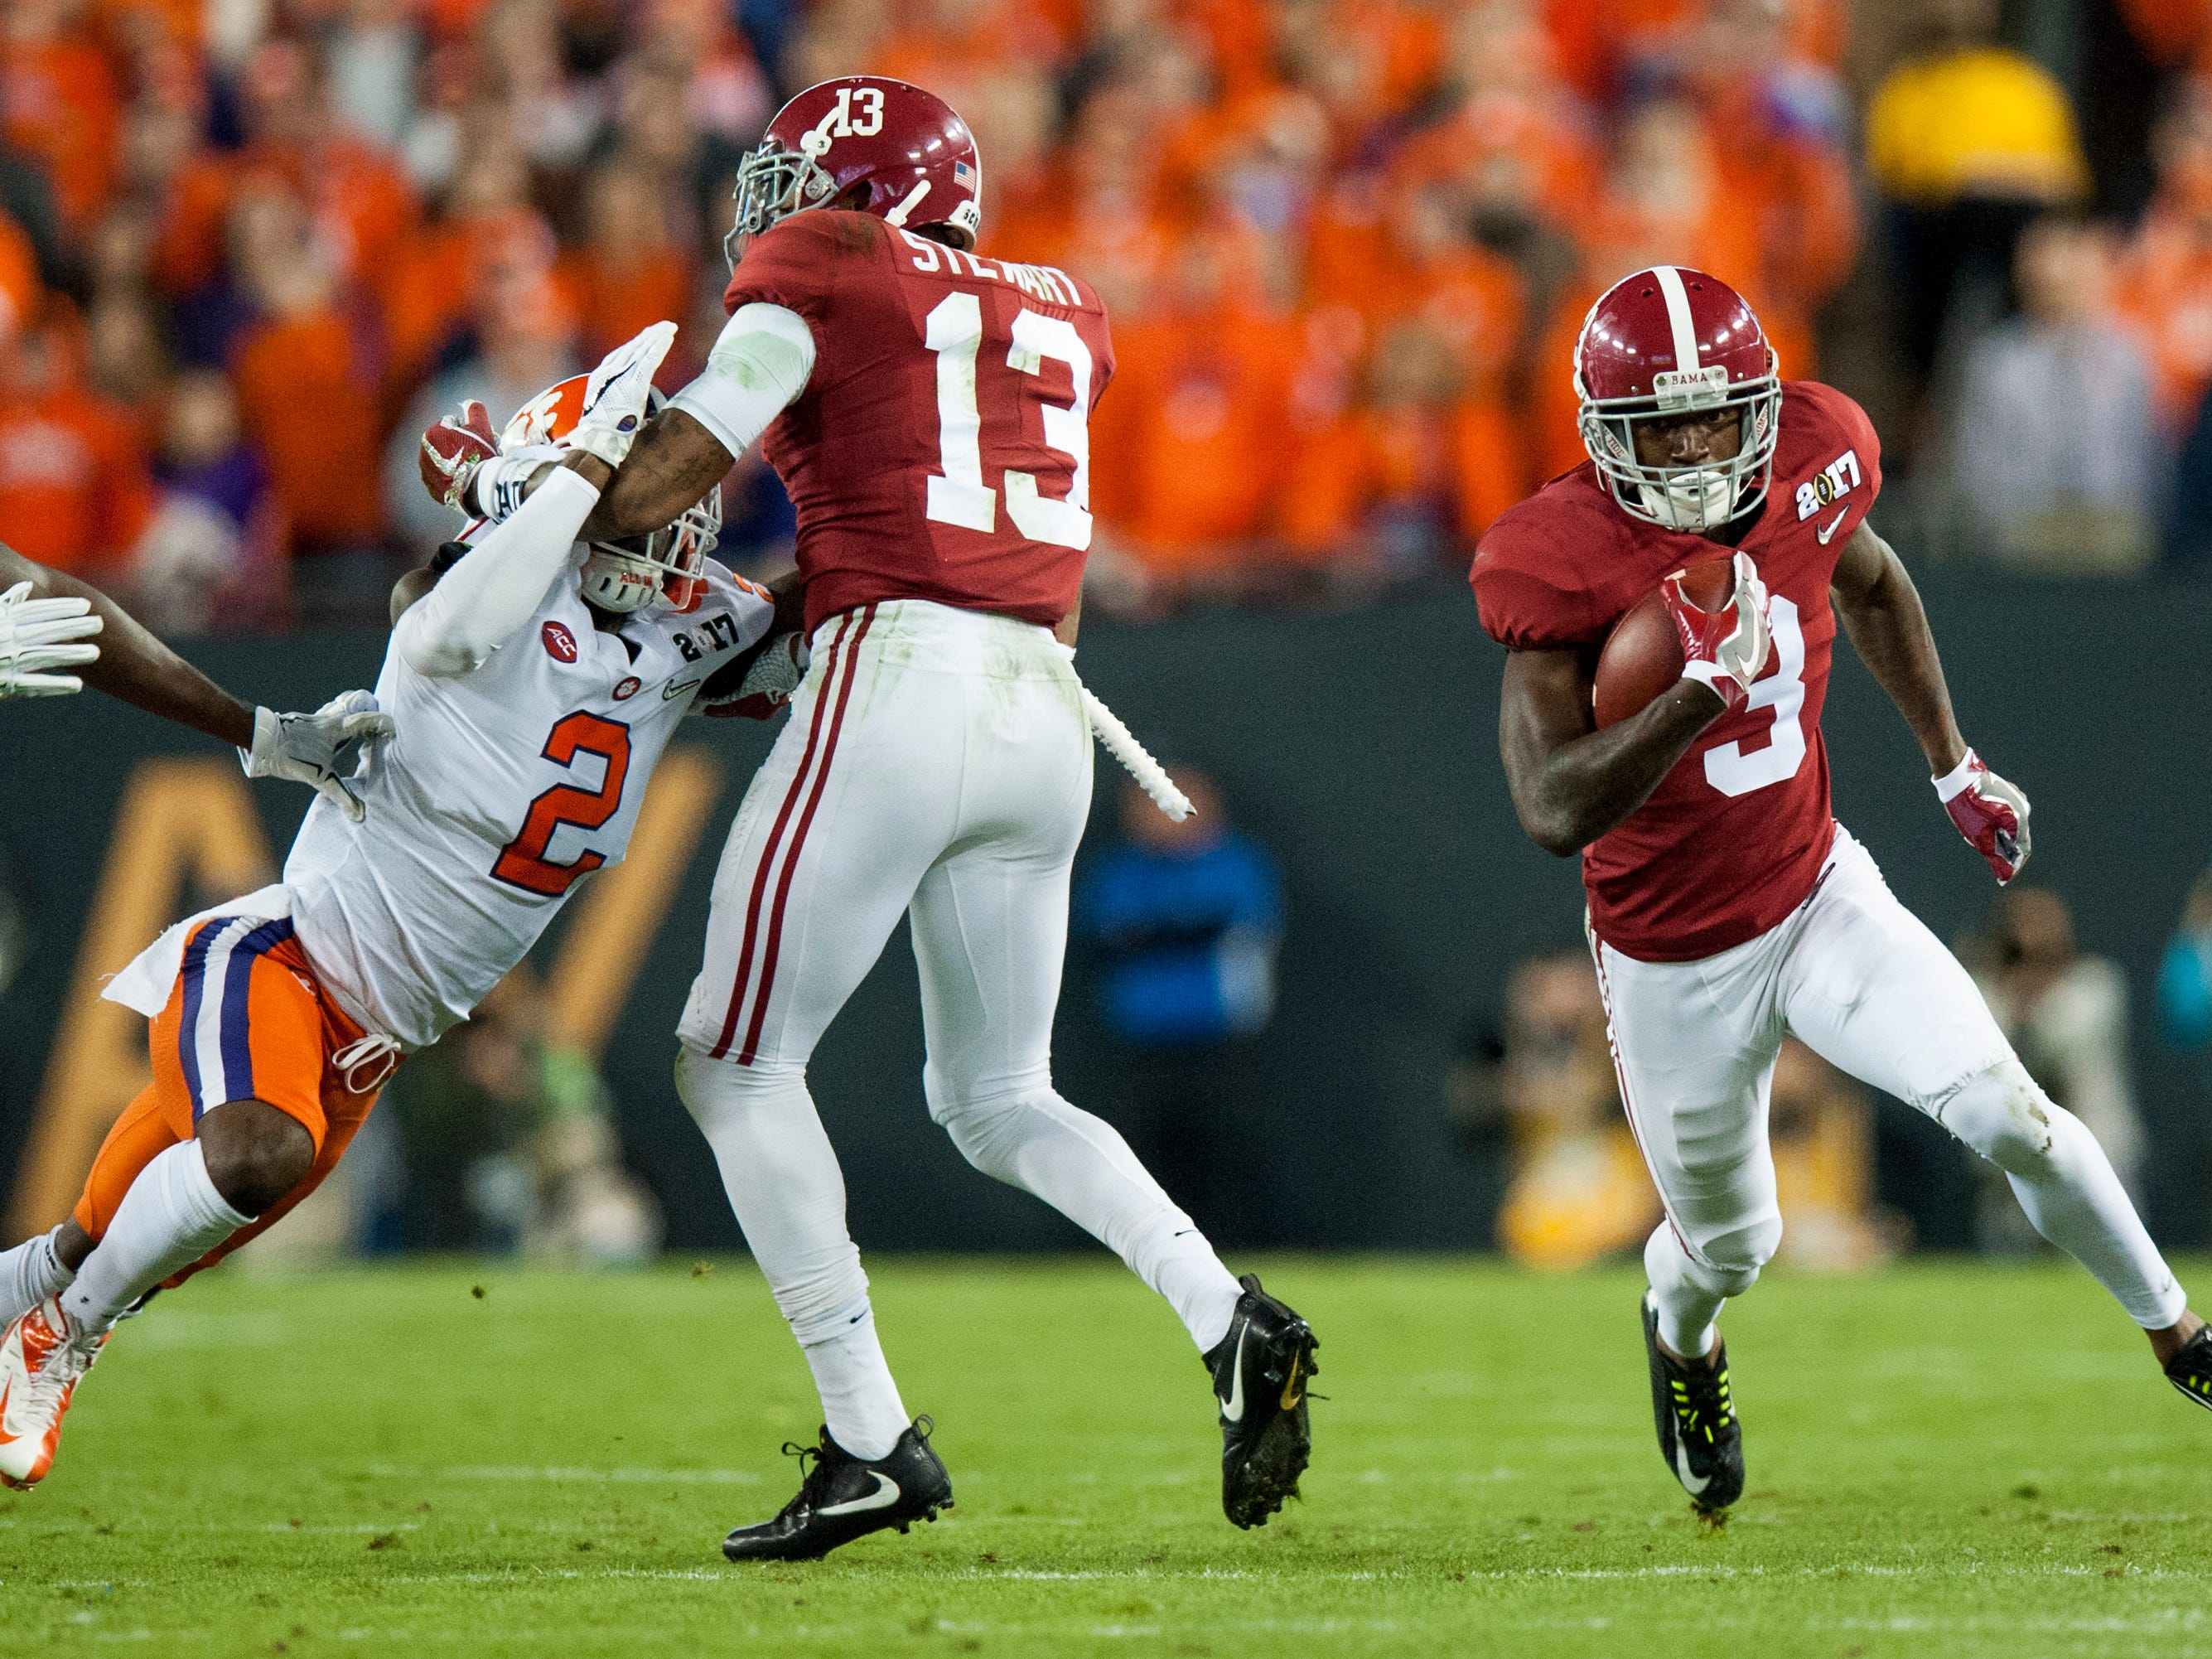 Alabama wide receiver Calvin Ridley (3) runs with a reception behind the blocking of Alabama wide receiver ArDarius Stewart (13) in first half action of the College Football Playoff National Championship Game at Raymond James Stadium in Tampa, Fla. on Monday January 9, 2017.